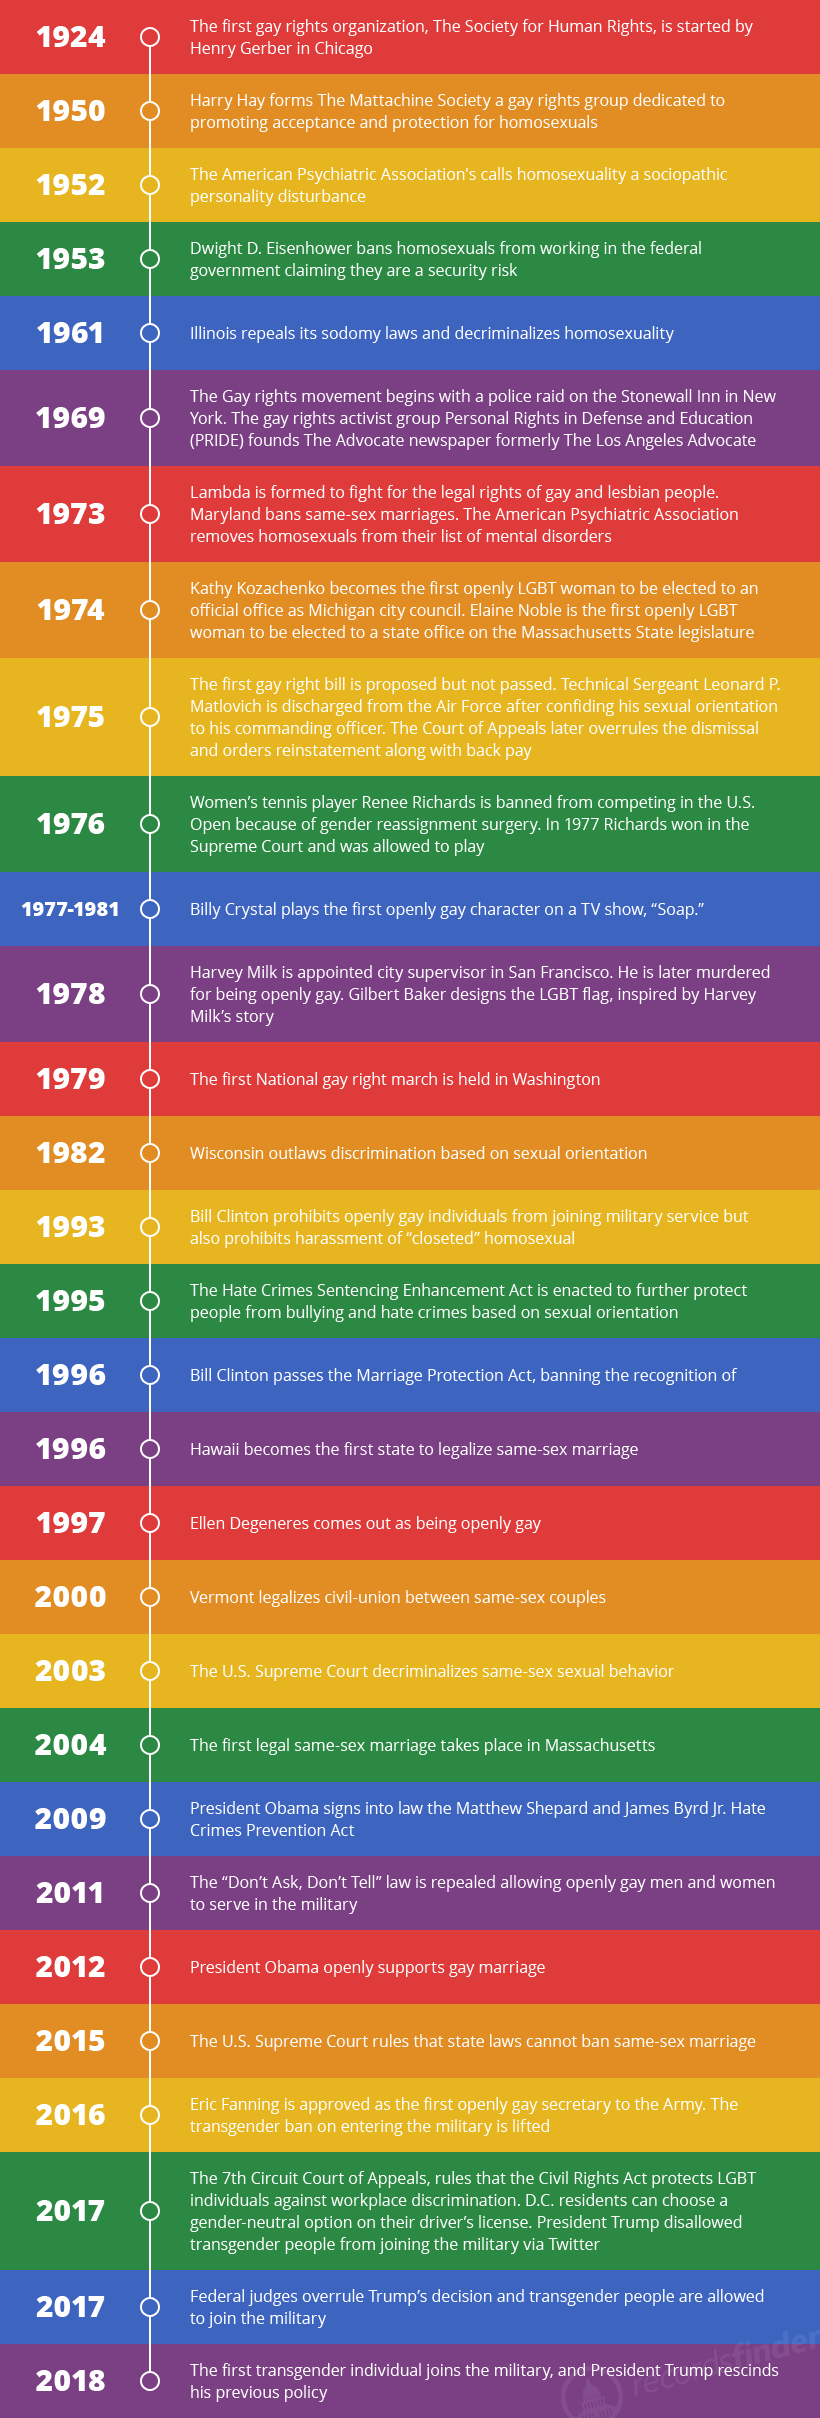 Timeline of LGBT Rights